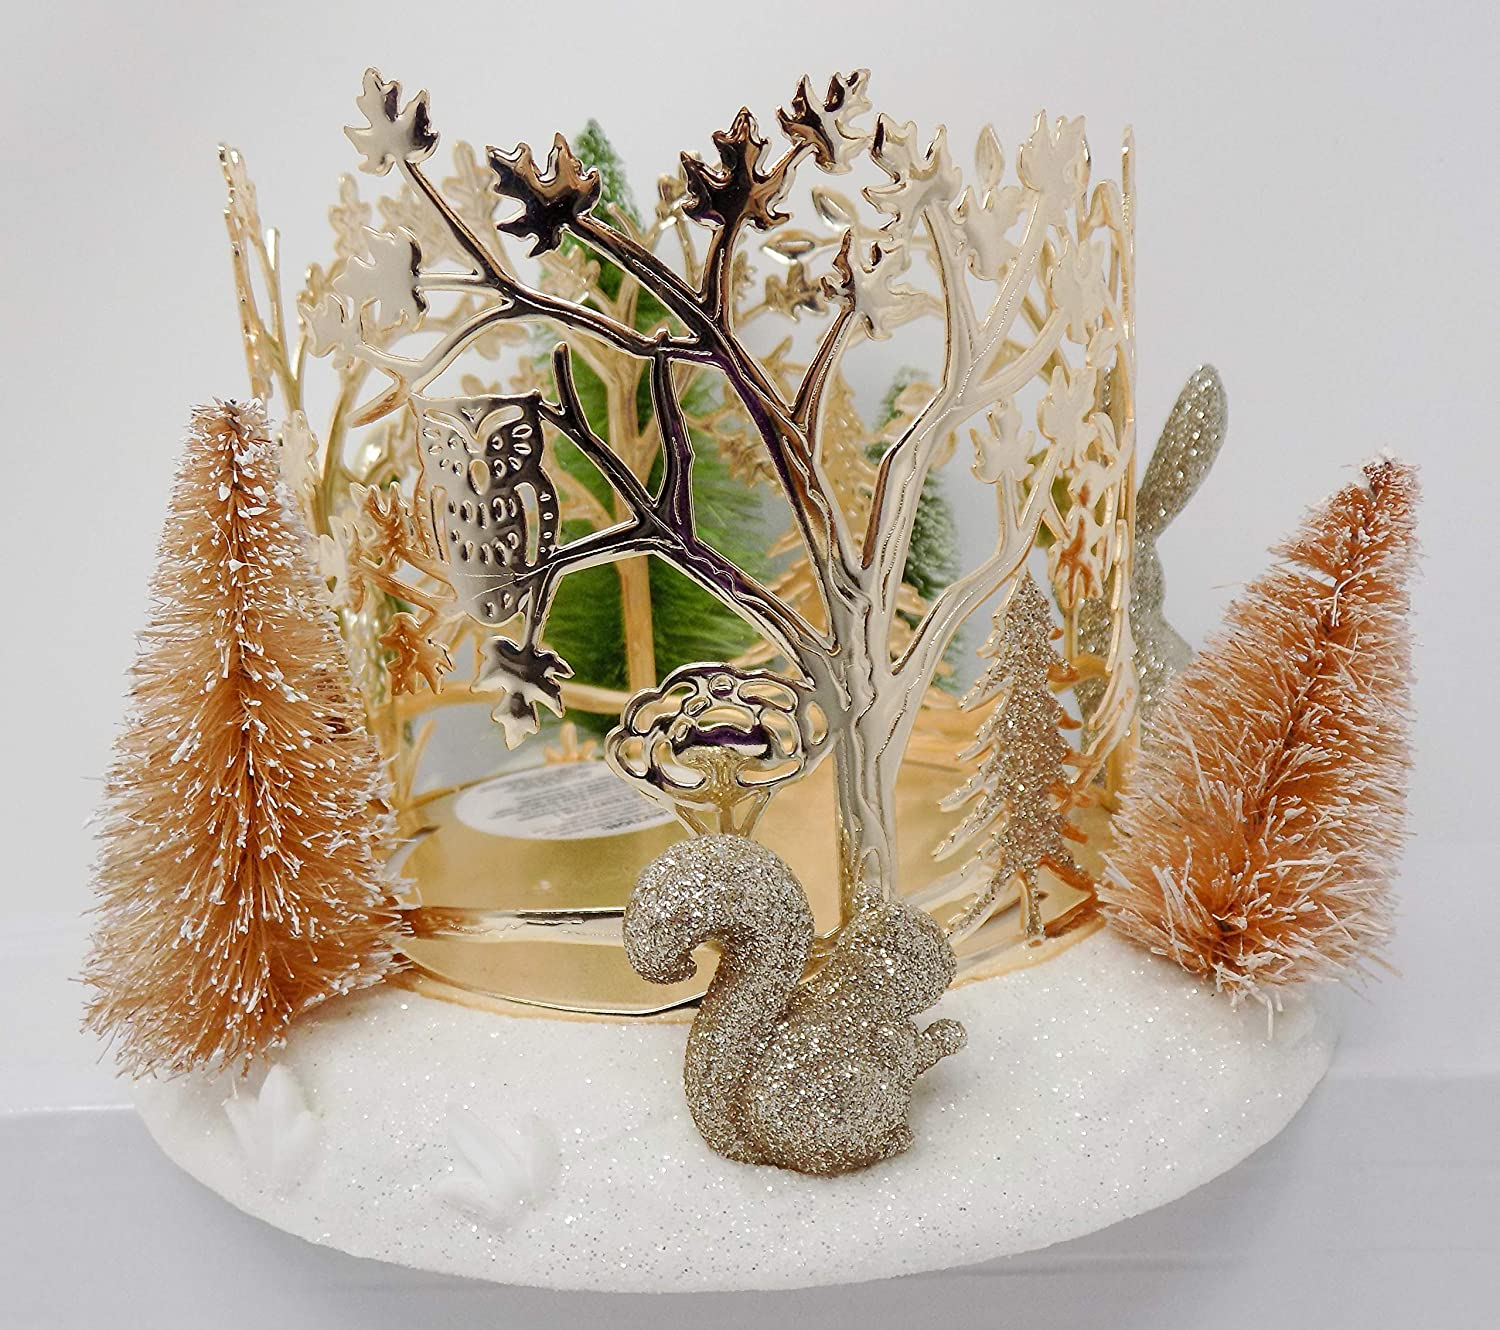 Bath Max 78% OFF Three Wick Candle Holder Winter Fox Trees Squ and Critters Max 49% OFF